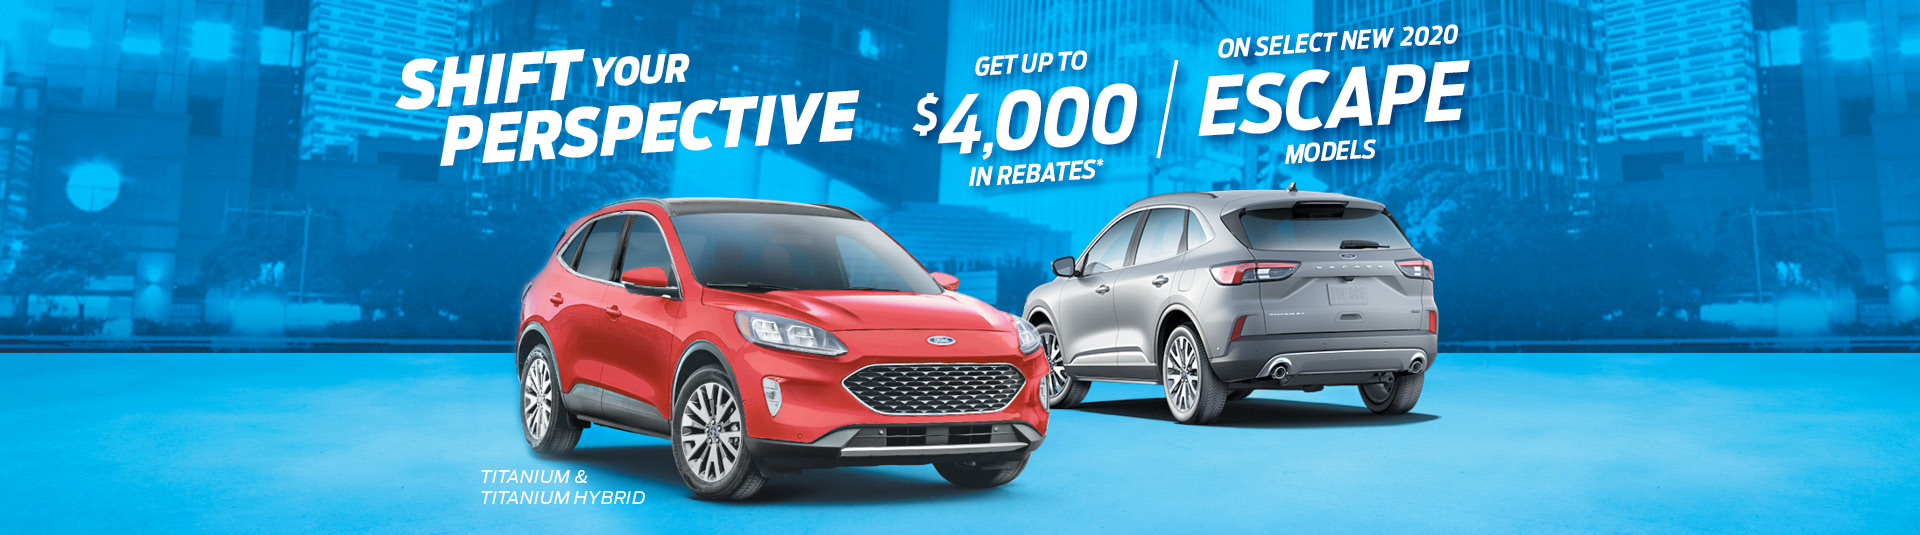 Up to $4000 in rebates on select 2020 Escape Models